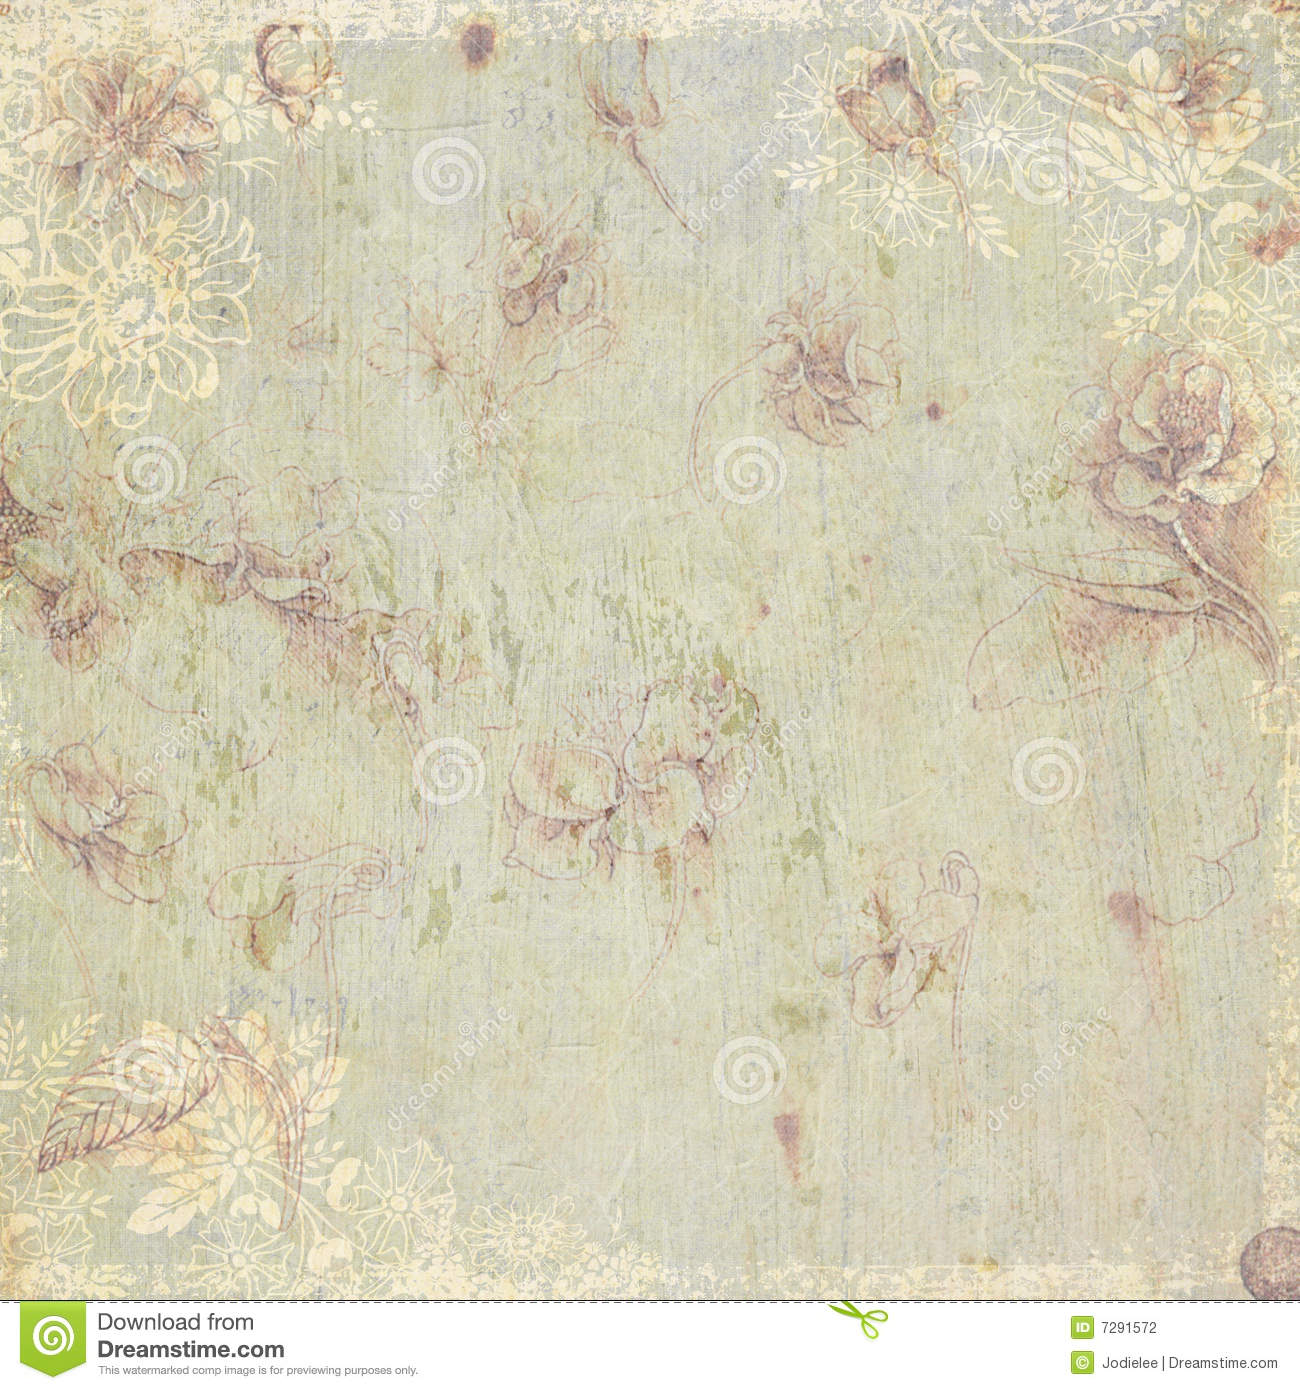 Https Www Dreamstime Com Stock Photography Vintage Floral Antique Background Theme Image7291572